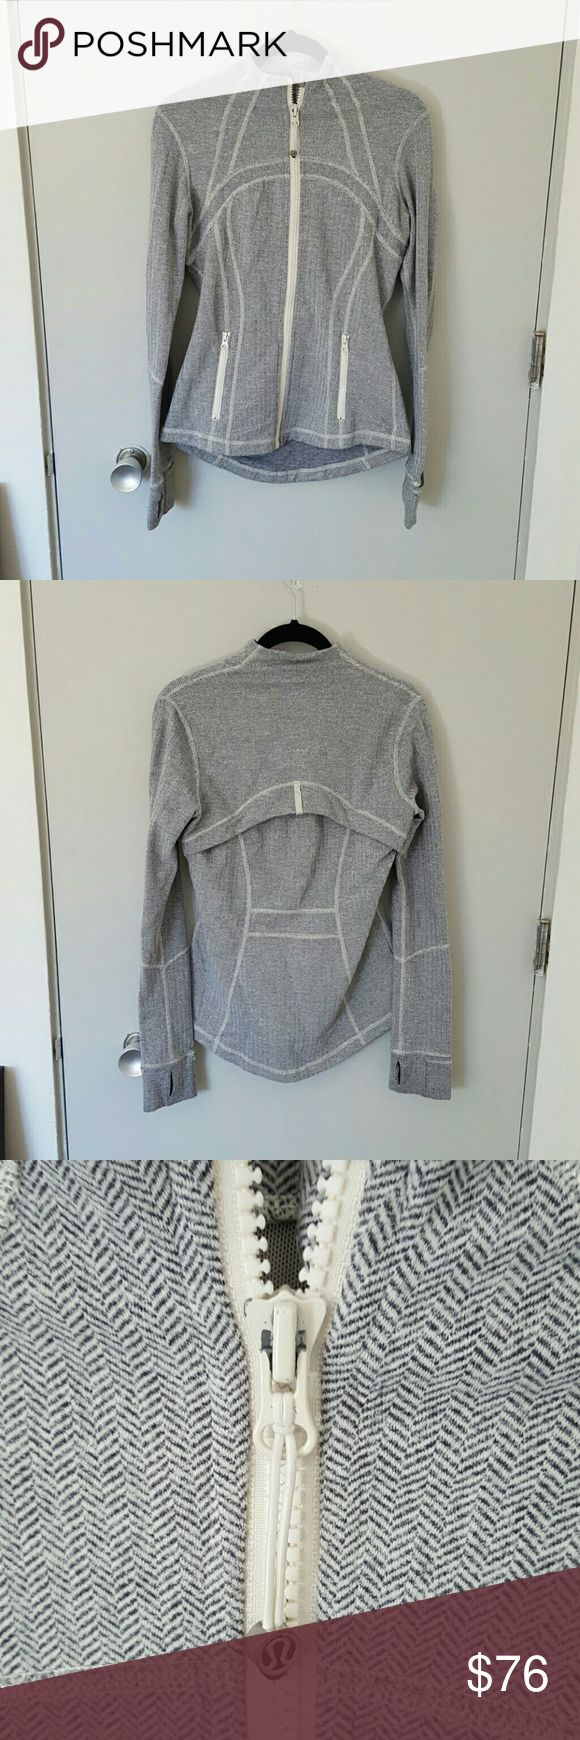 Lululemon athletica Define Jacket Lululemon athletica Define Jacket in white and gray Chevron knit pattern. Great condition! Only flaw is a tiny bit of chipping on the zipper as shown in the photo. lululemon athletica Jackets & Coats Utility Jackets